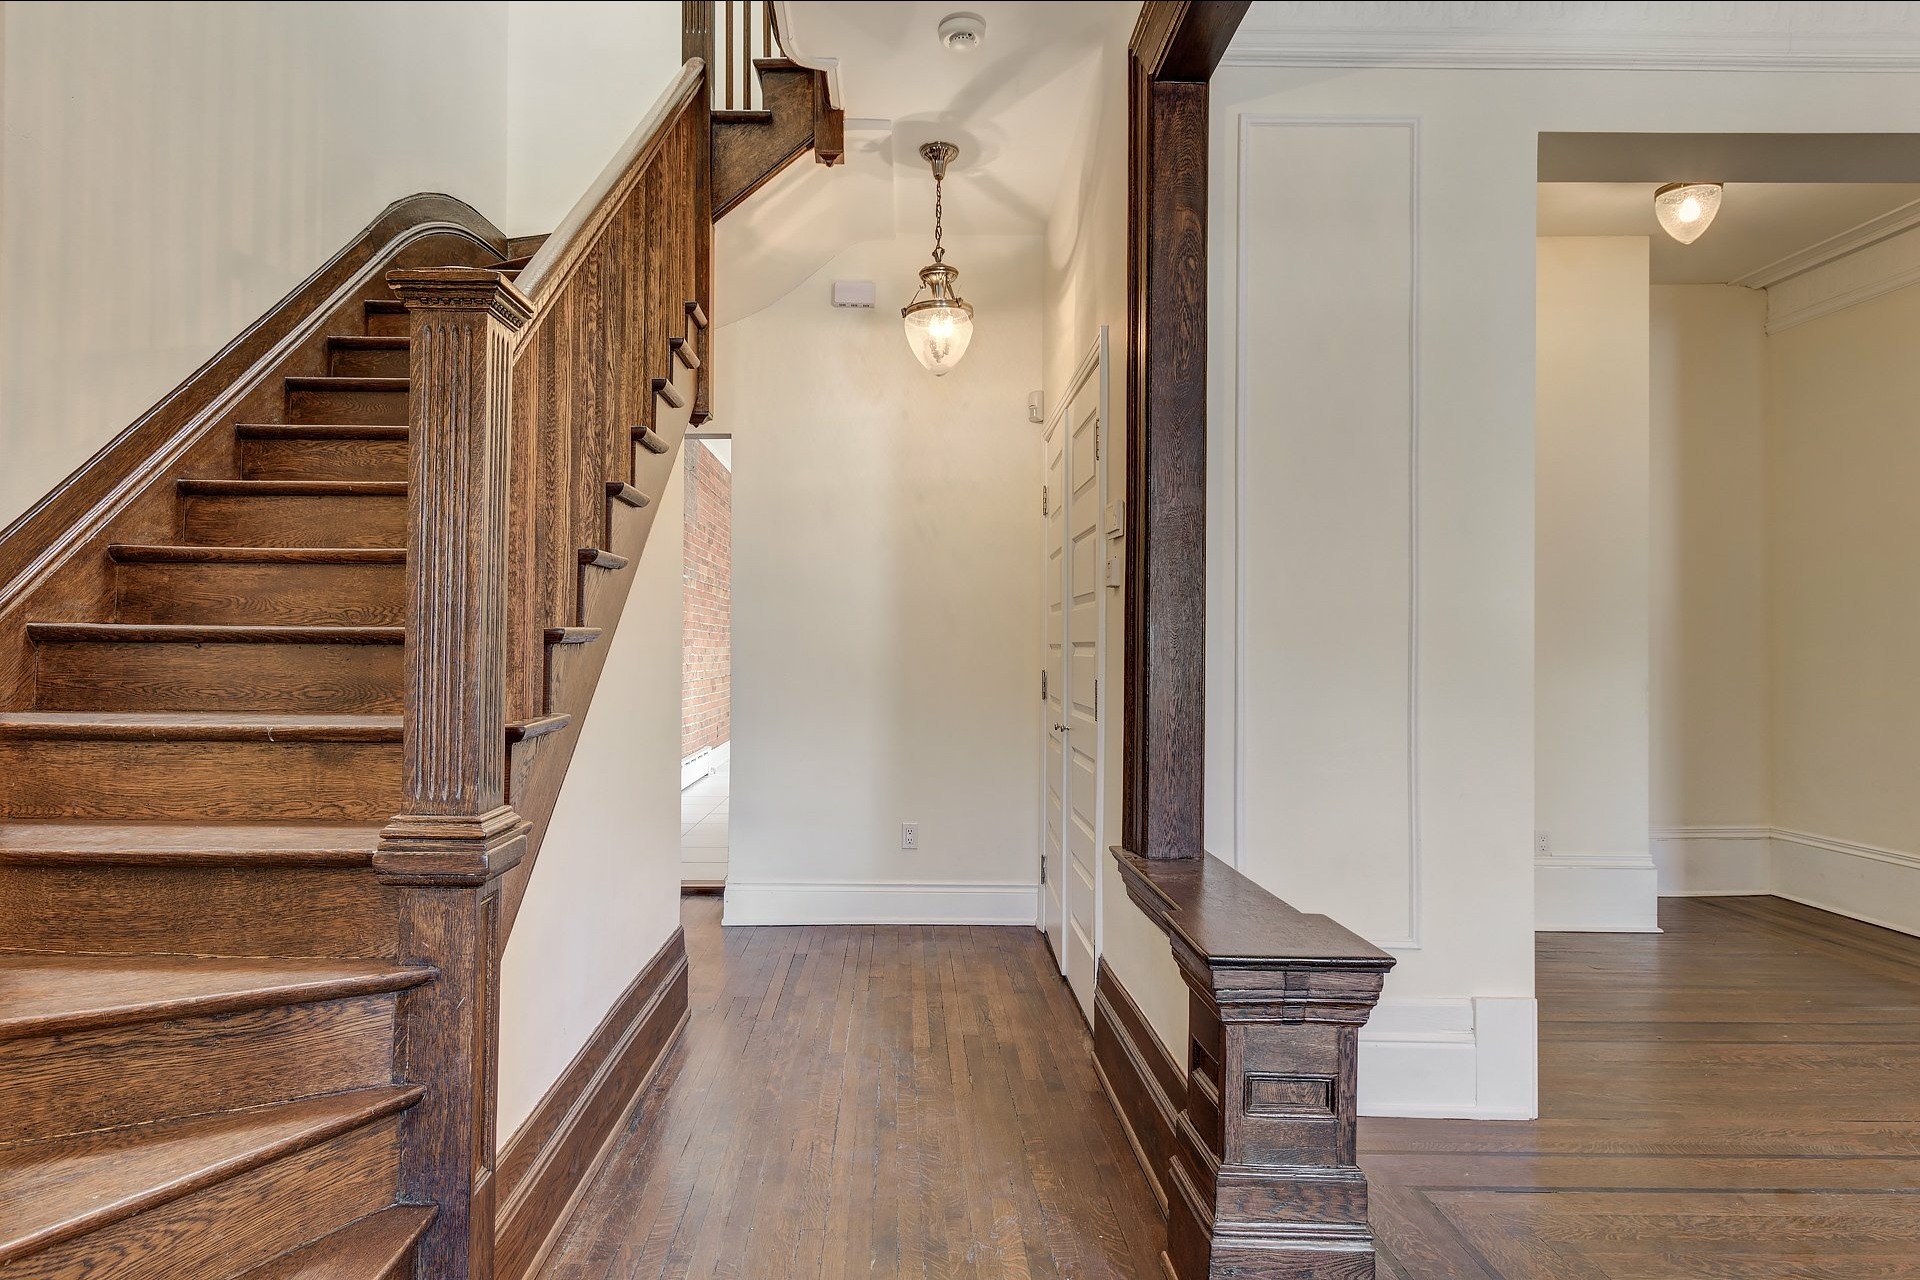 image 4 - House For rent Westmount - 9 rooms